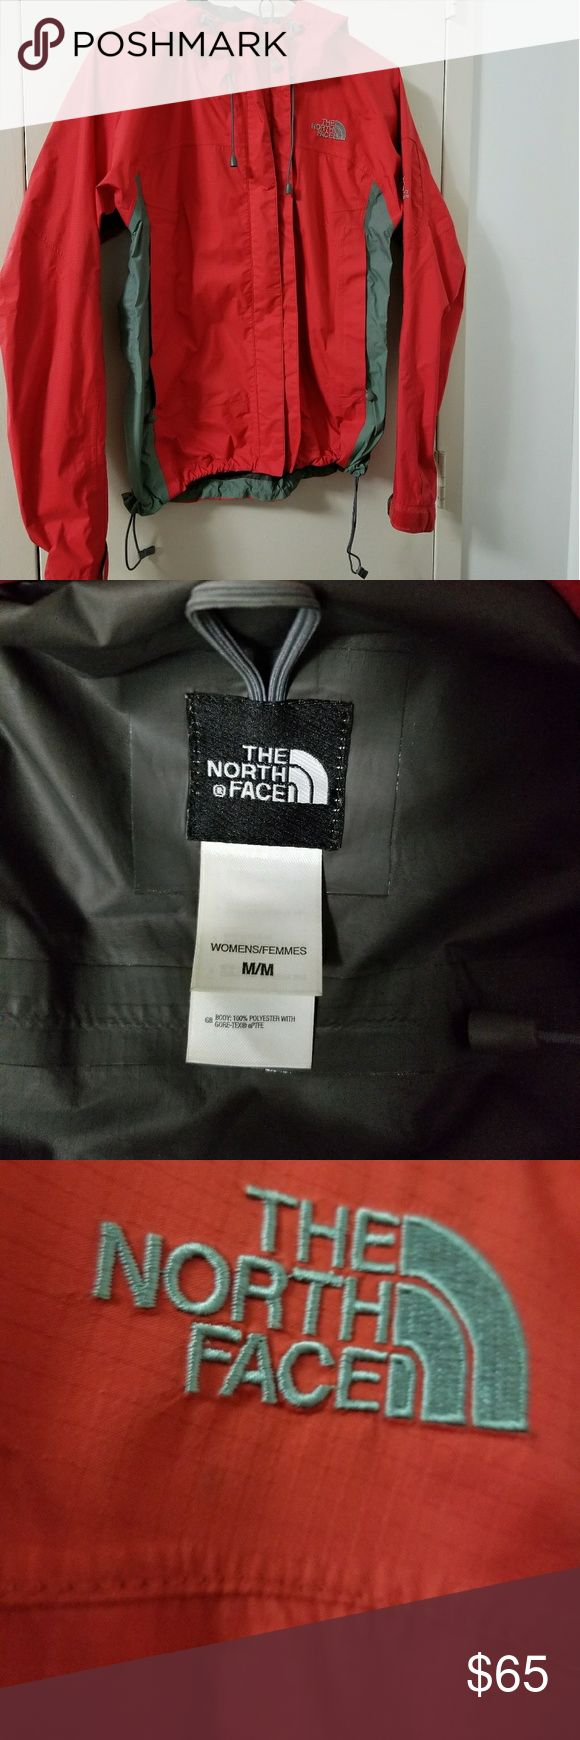 THE NORTH FACE Ladies Jacket M NWOT Last two pics show actial color The North Face Jackets & Coats